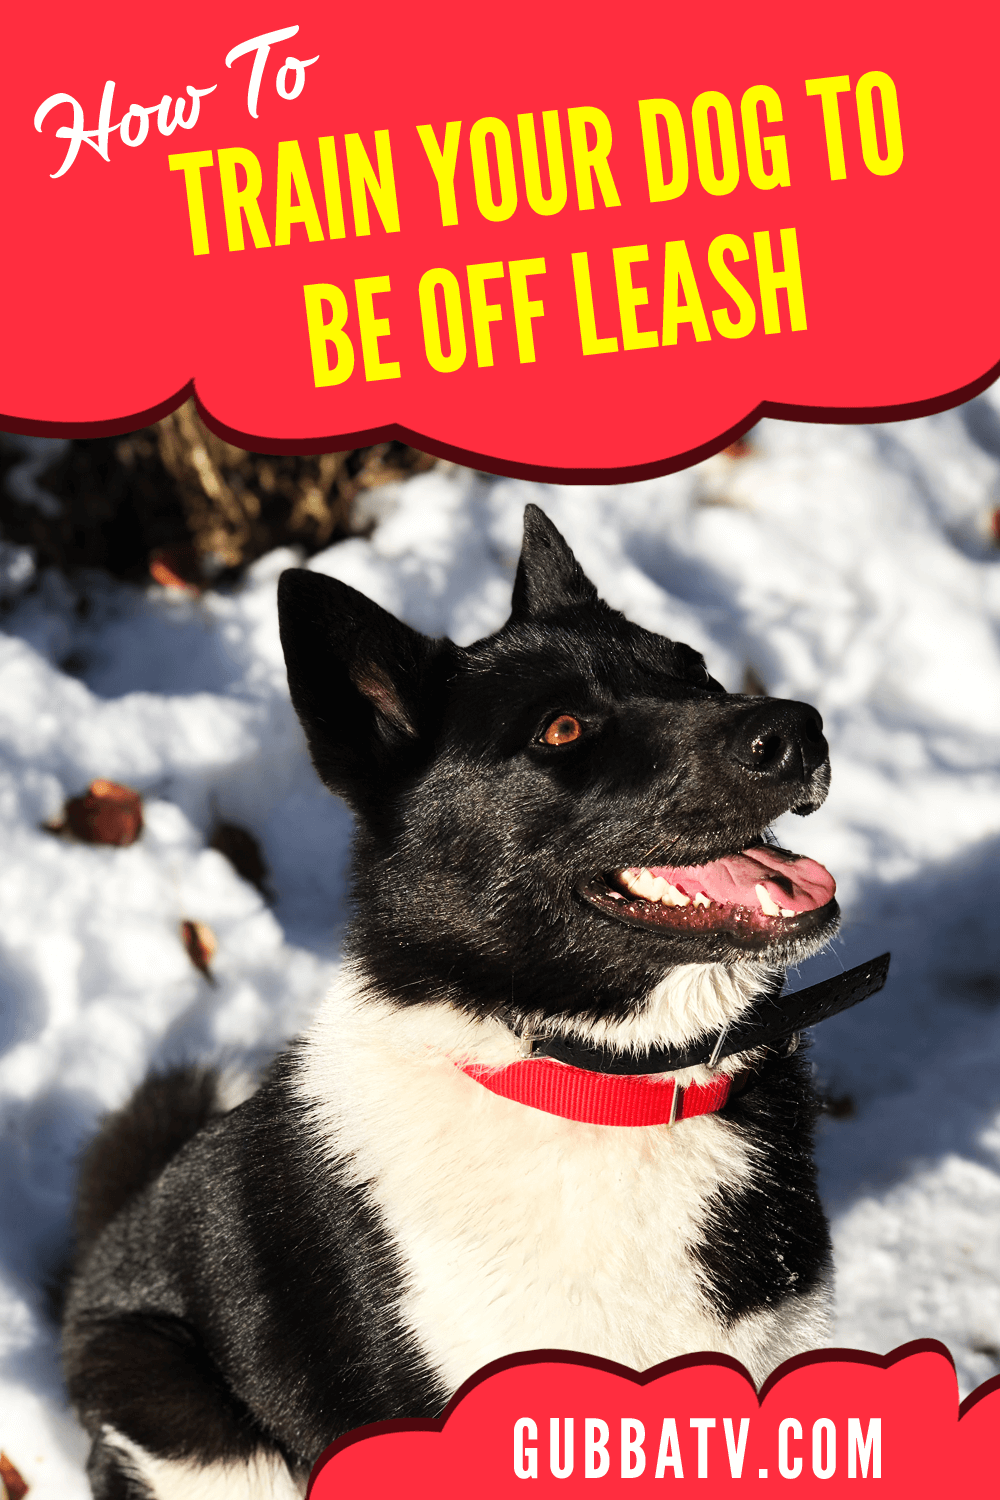 How To Train Your Dog To Be Off Leash